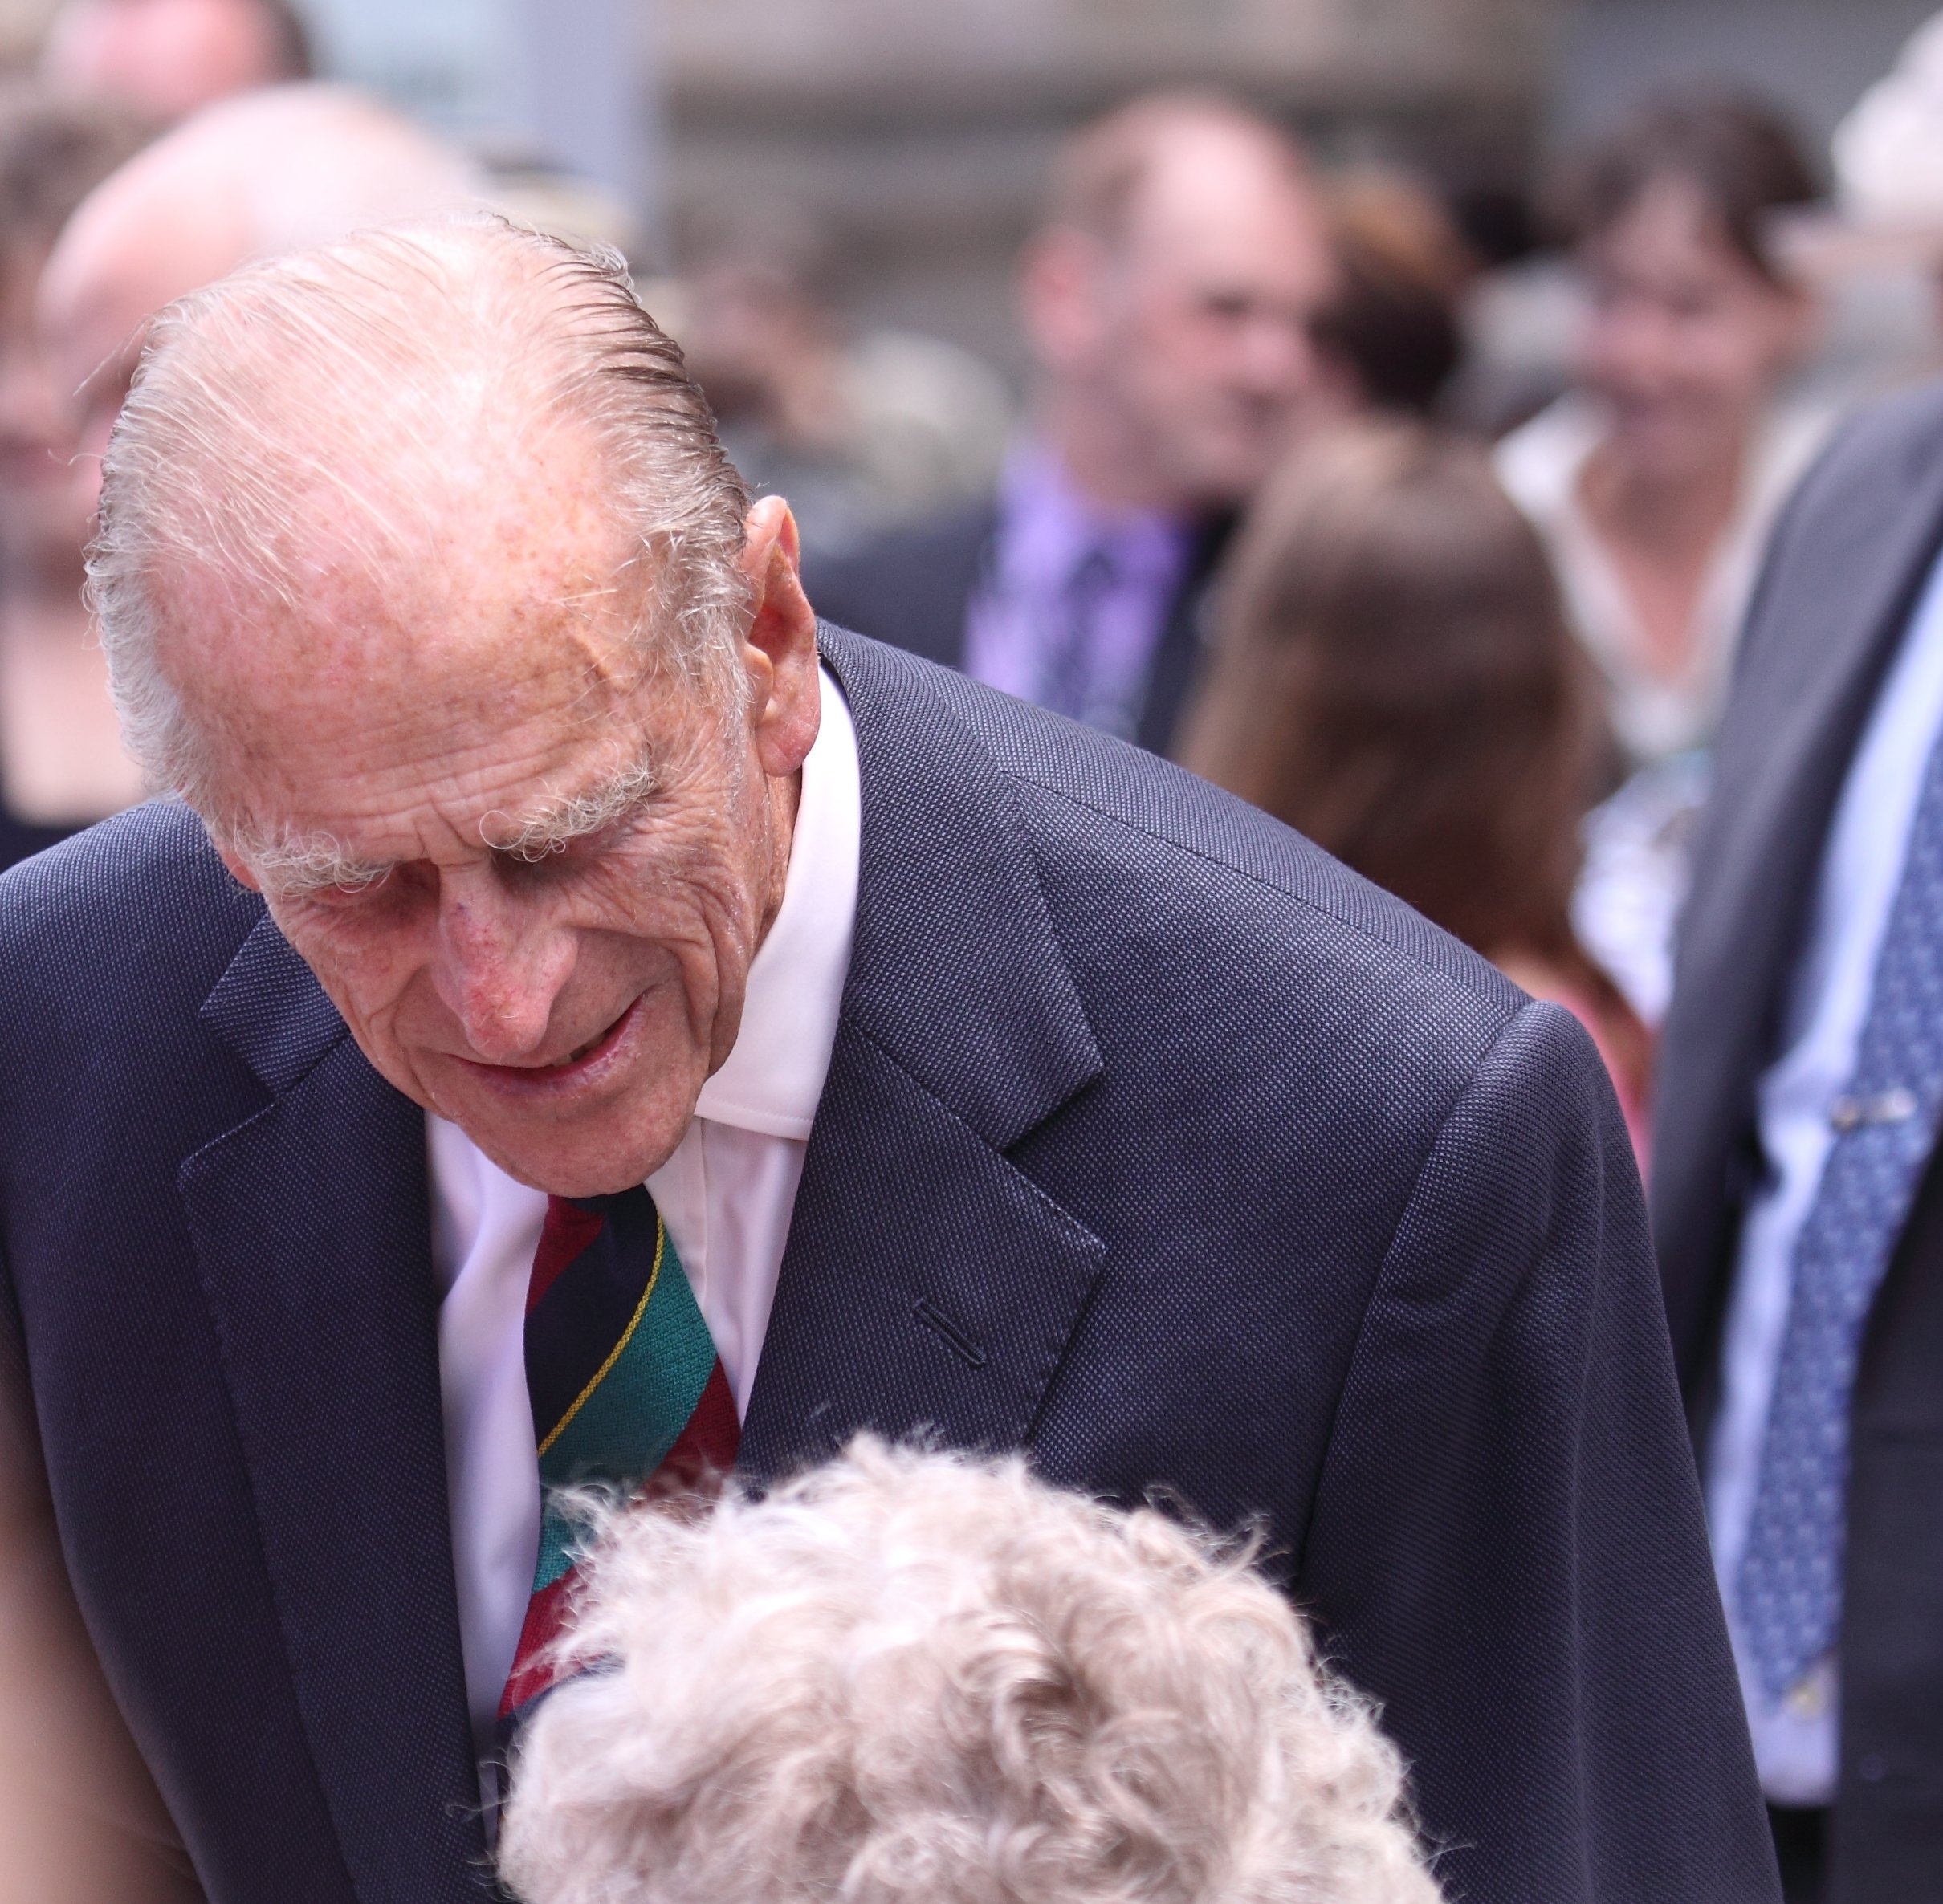 Prince Philip talks to an admirer during his visit to Ottawa with Queen Elizabeth II on June 30, 2010, in Ottawa, Canada | Photo: Shutterstock